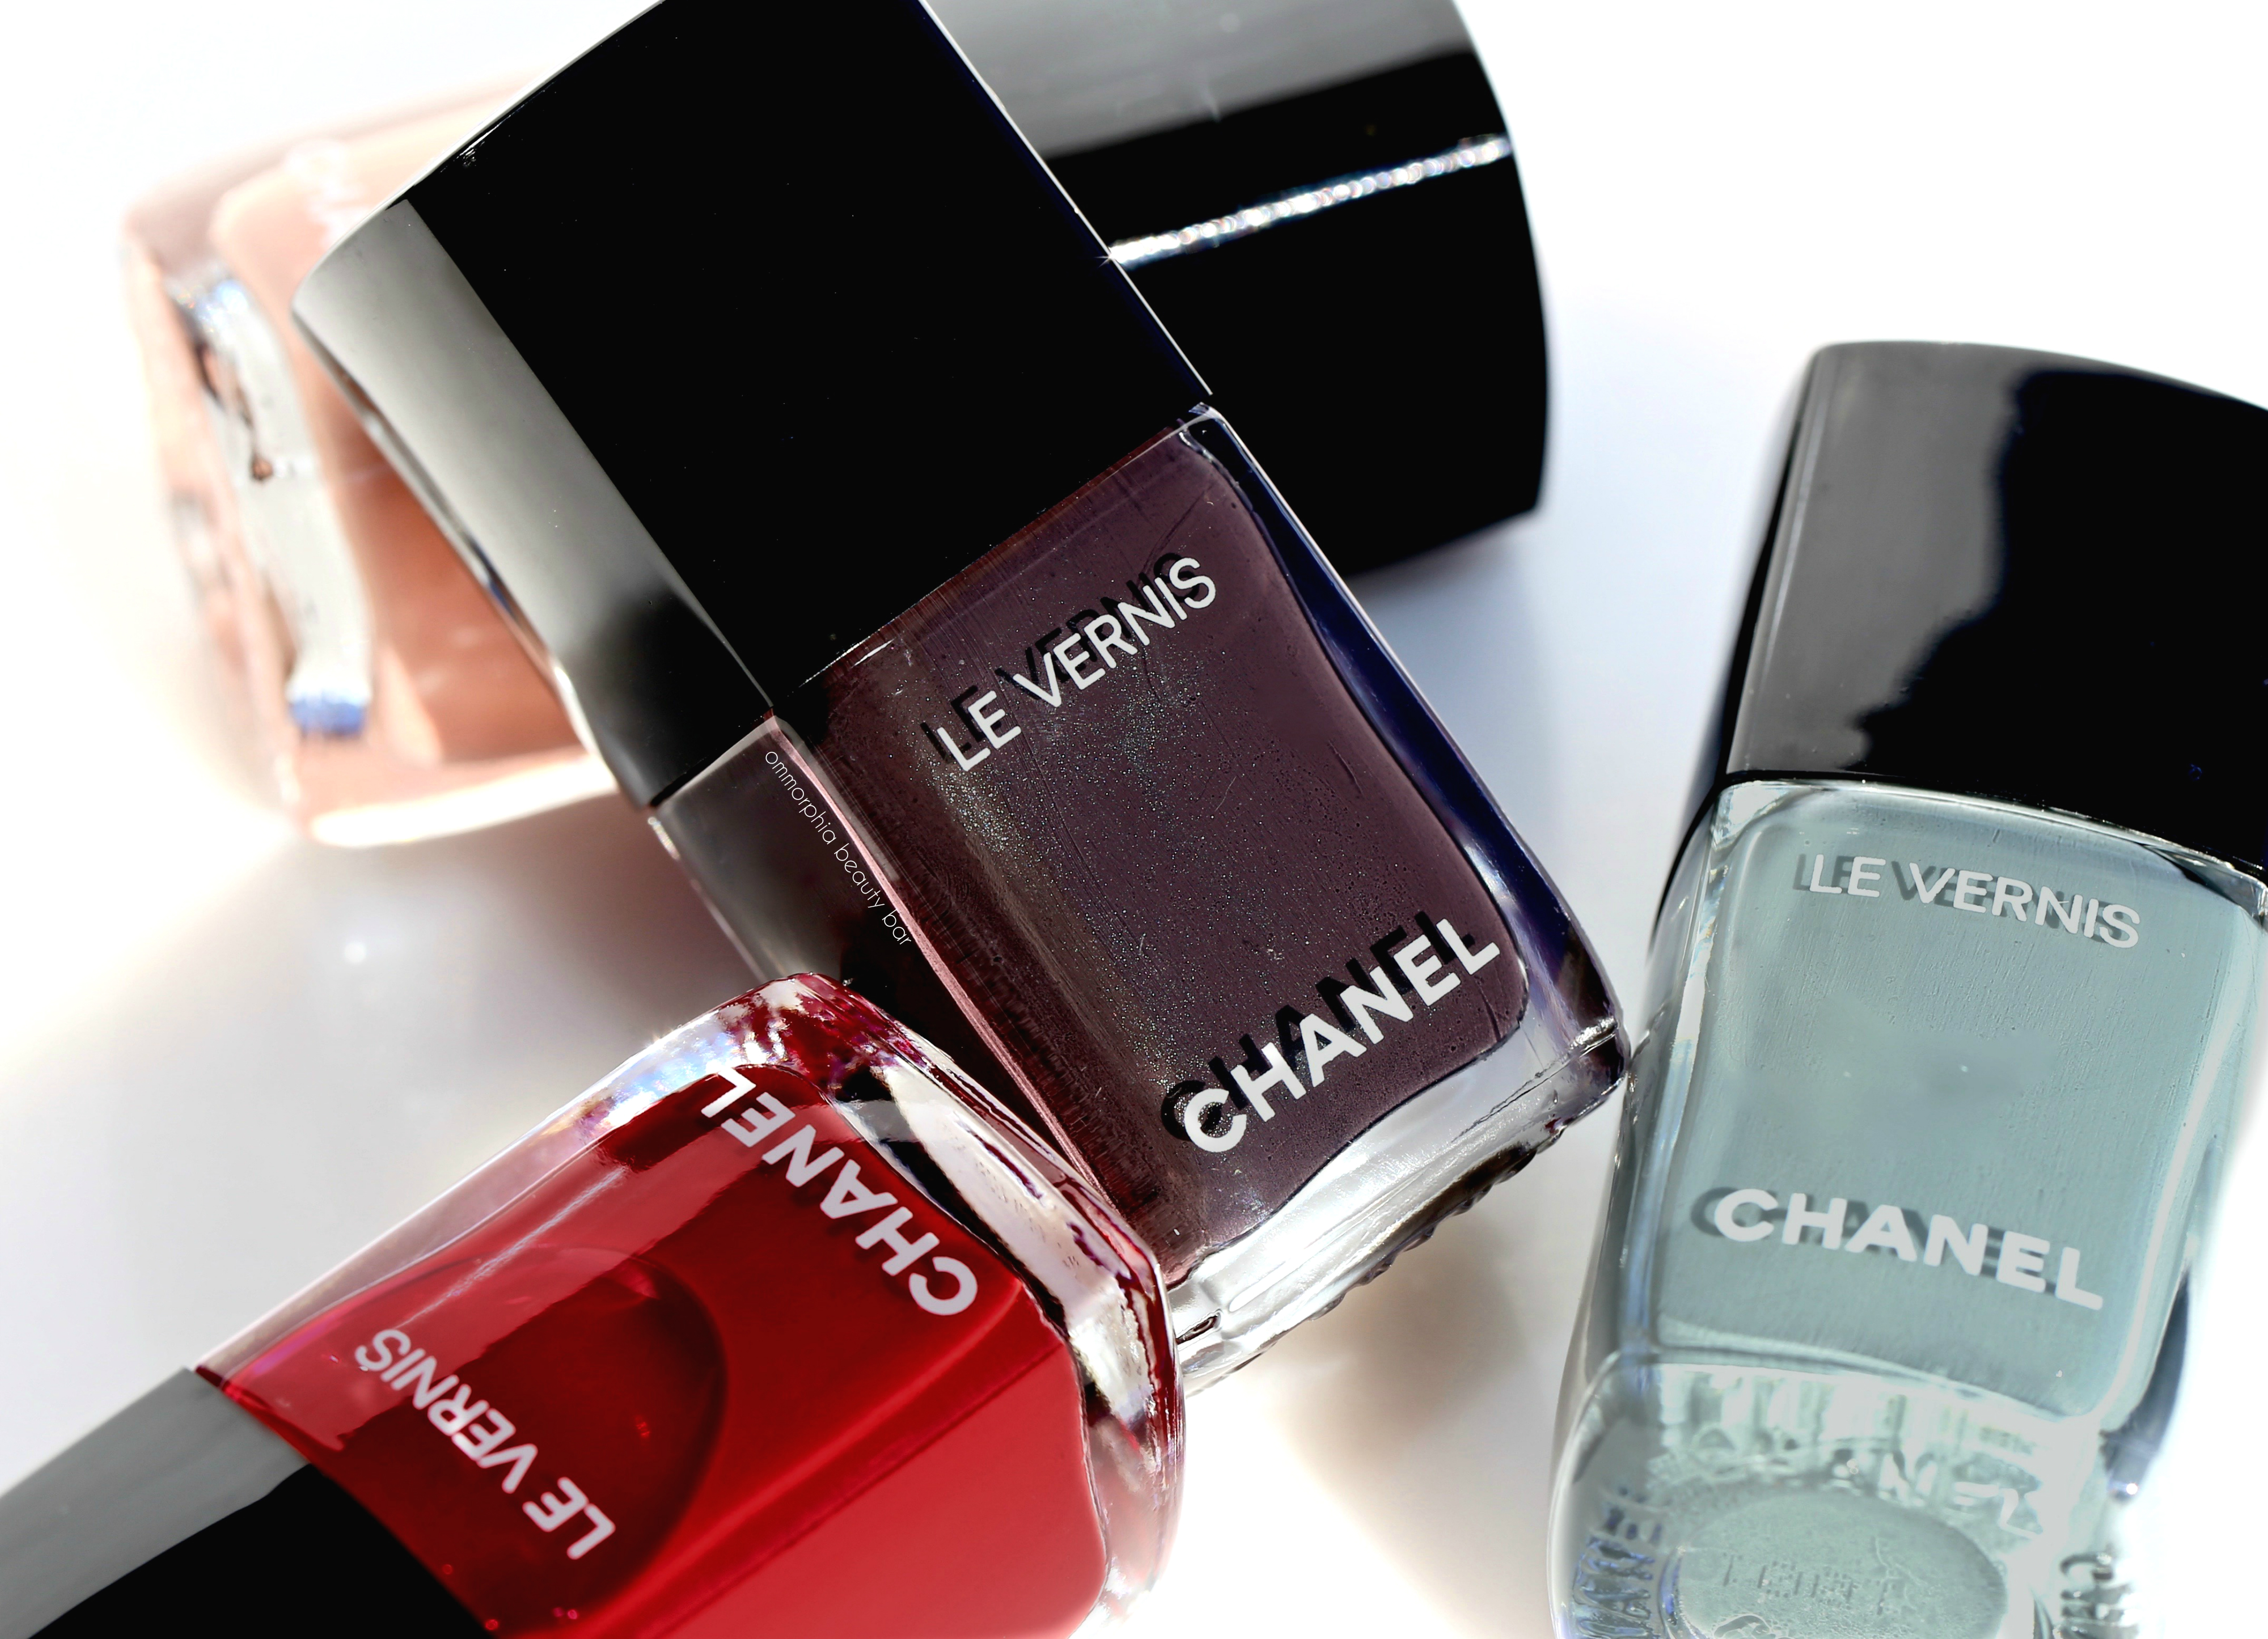 CHANEL · Le Vernis for Spring 2017 | ommorphia beauty bar